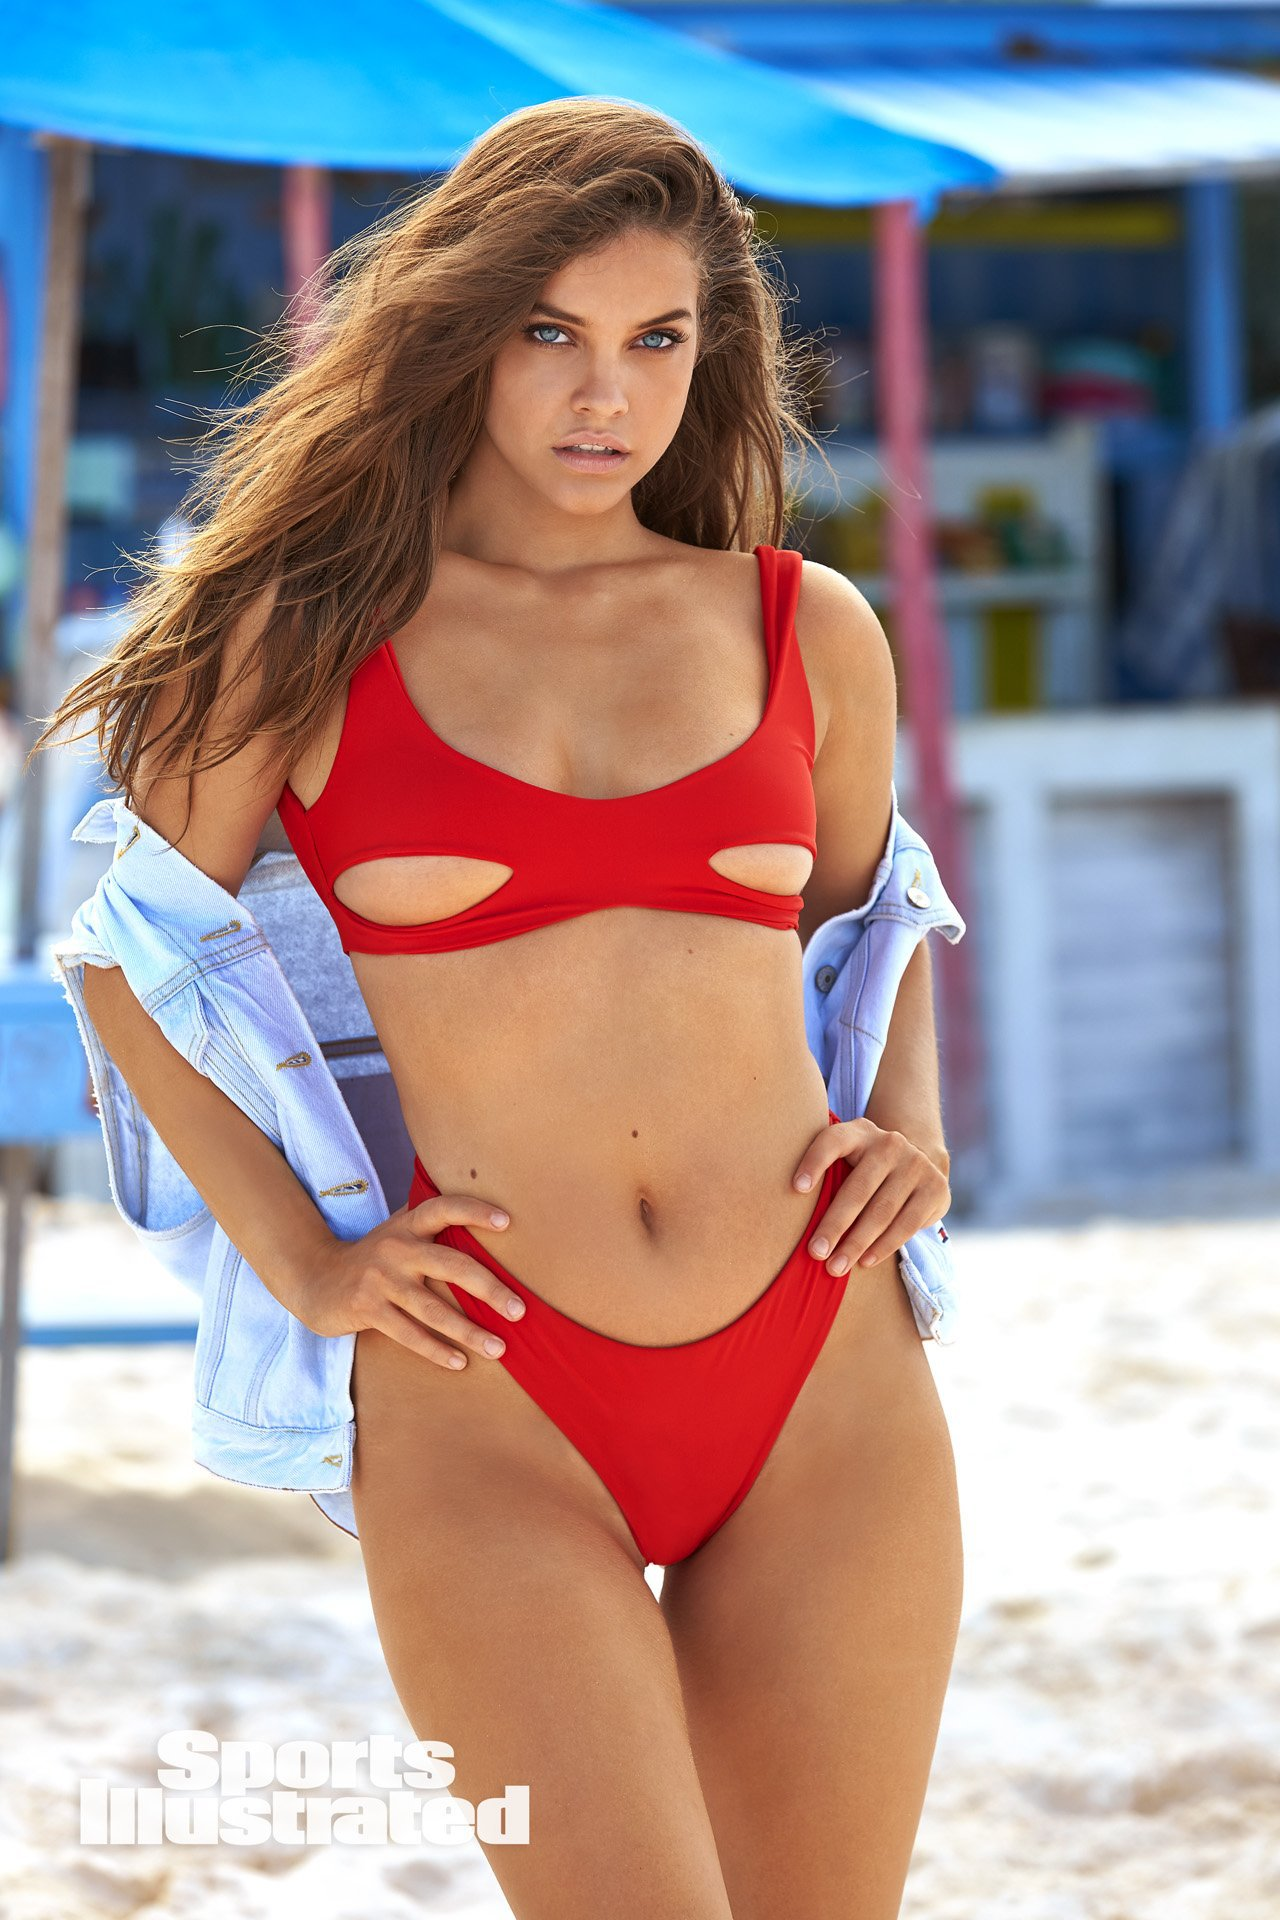 Barbara Palvin Hot in Red Bikini